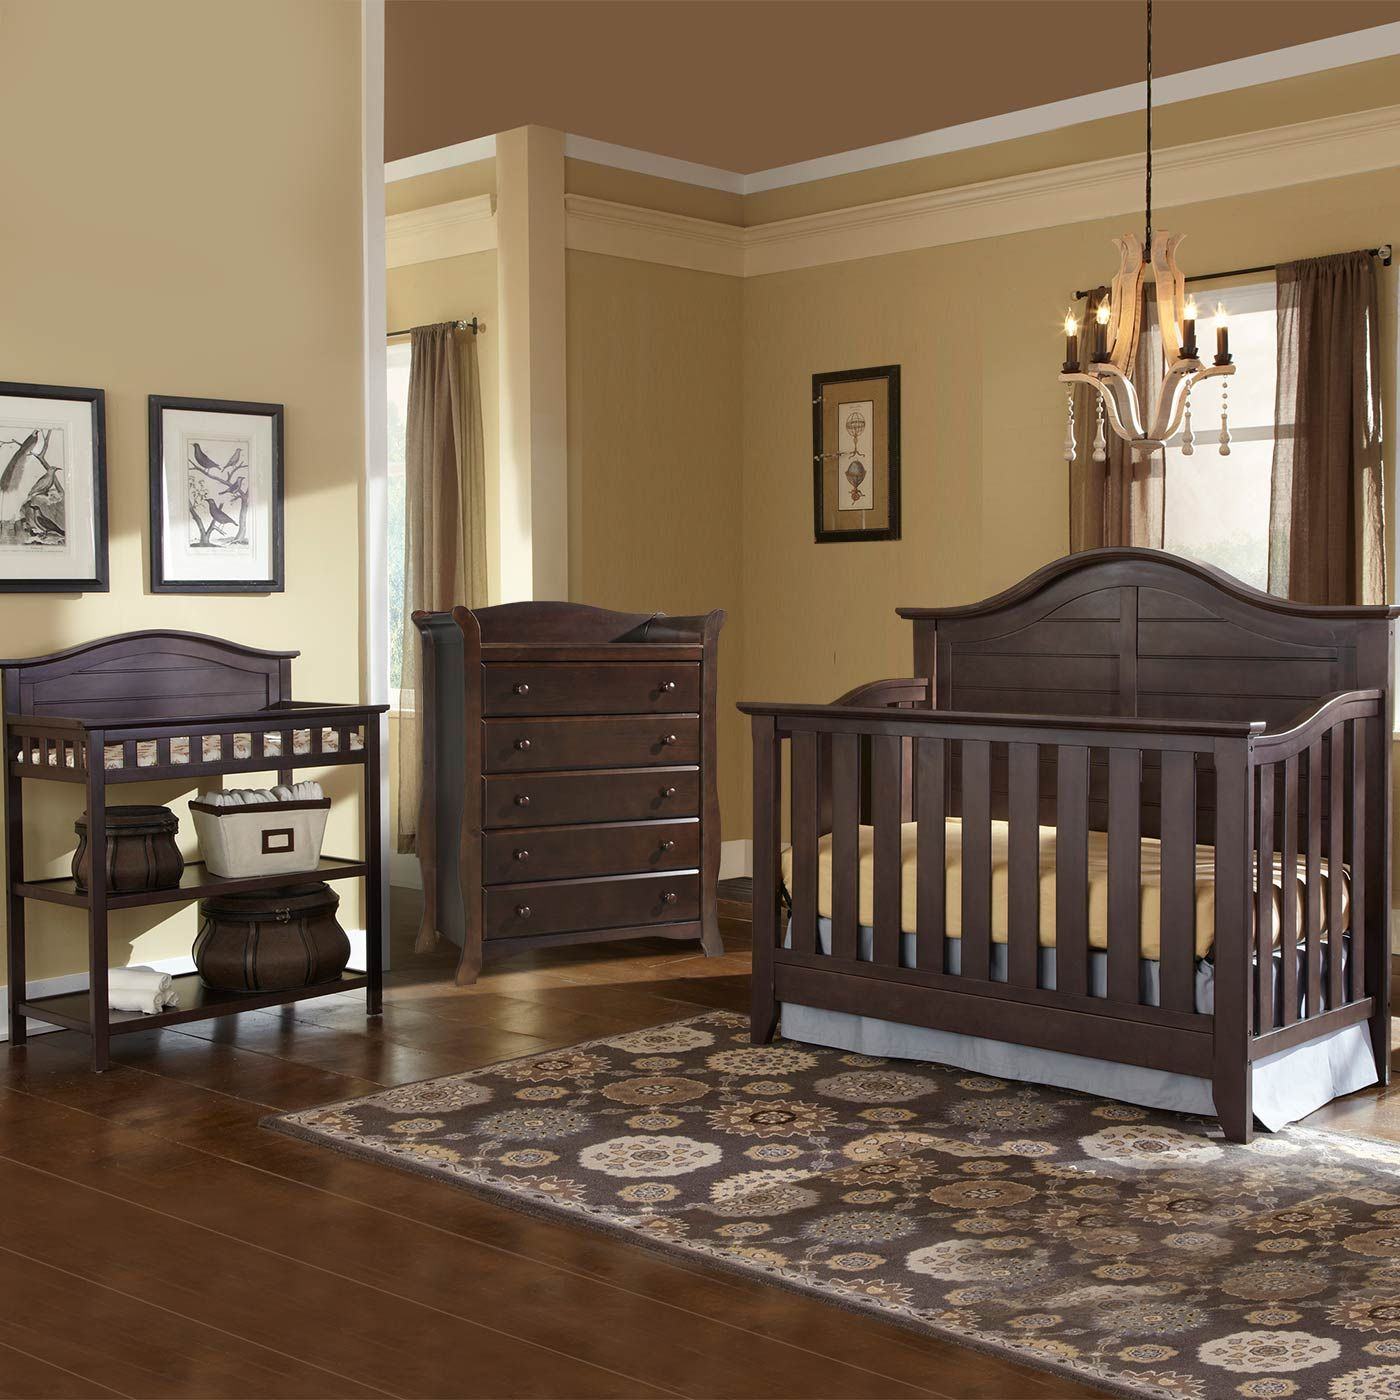 Thomasville 3 Piece Nursery Set Southern Dunes Lifestyle Crib Dressing Table And Avalon 5